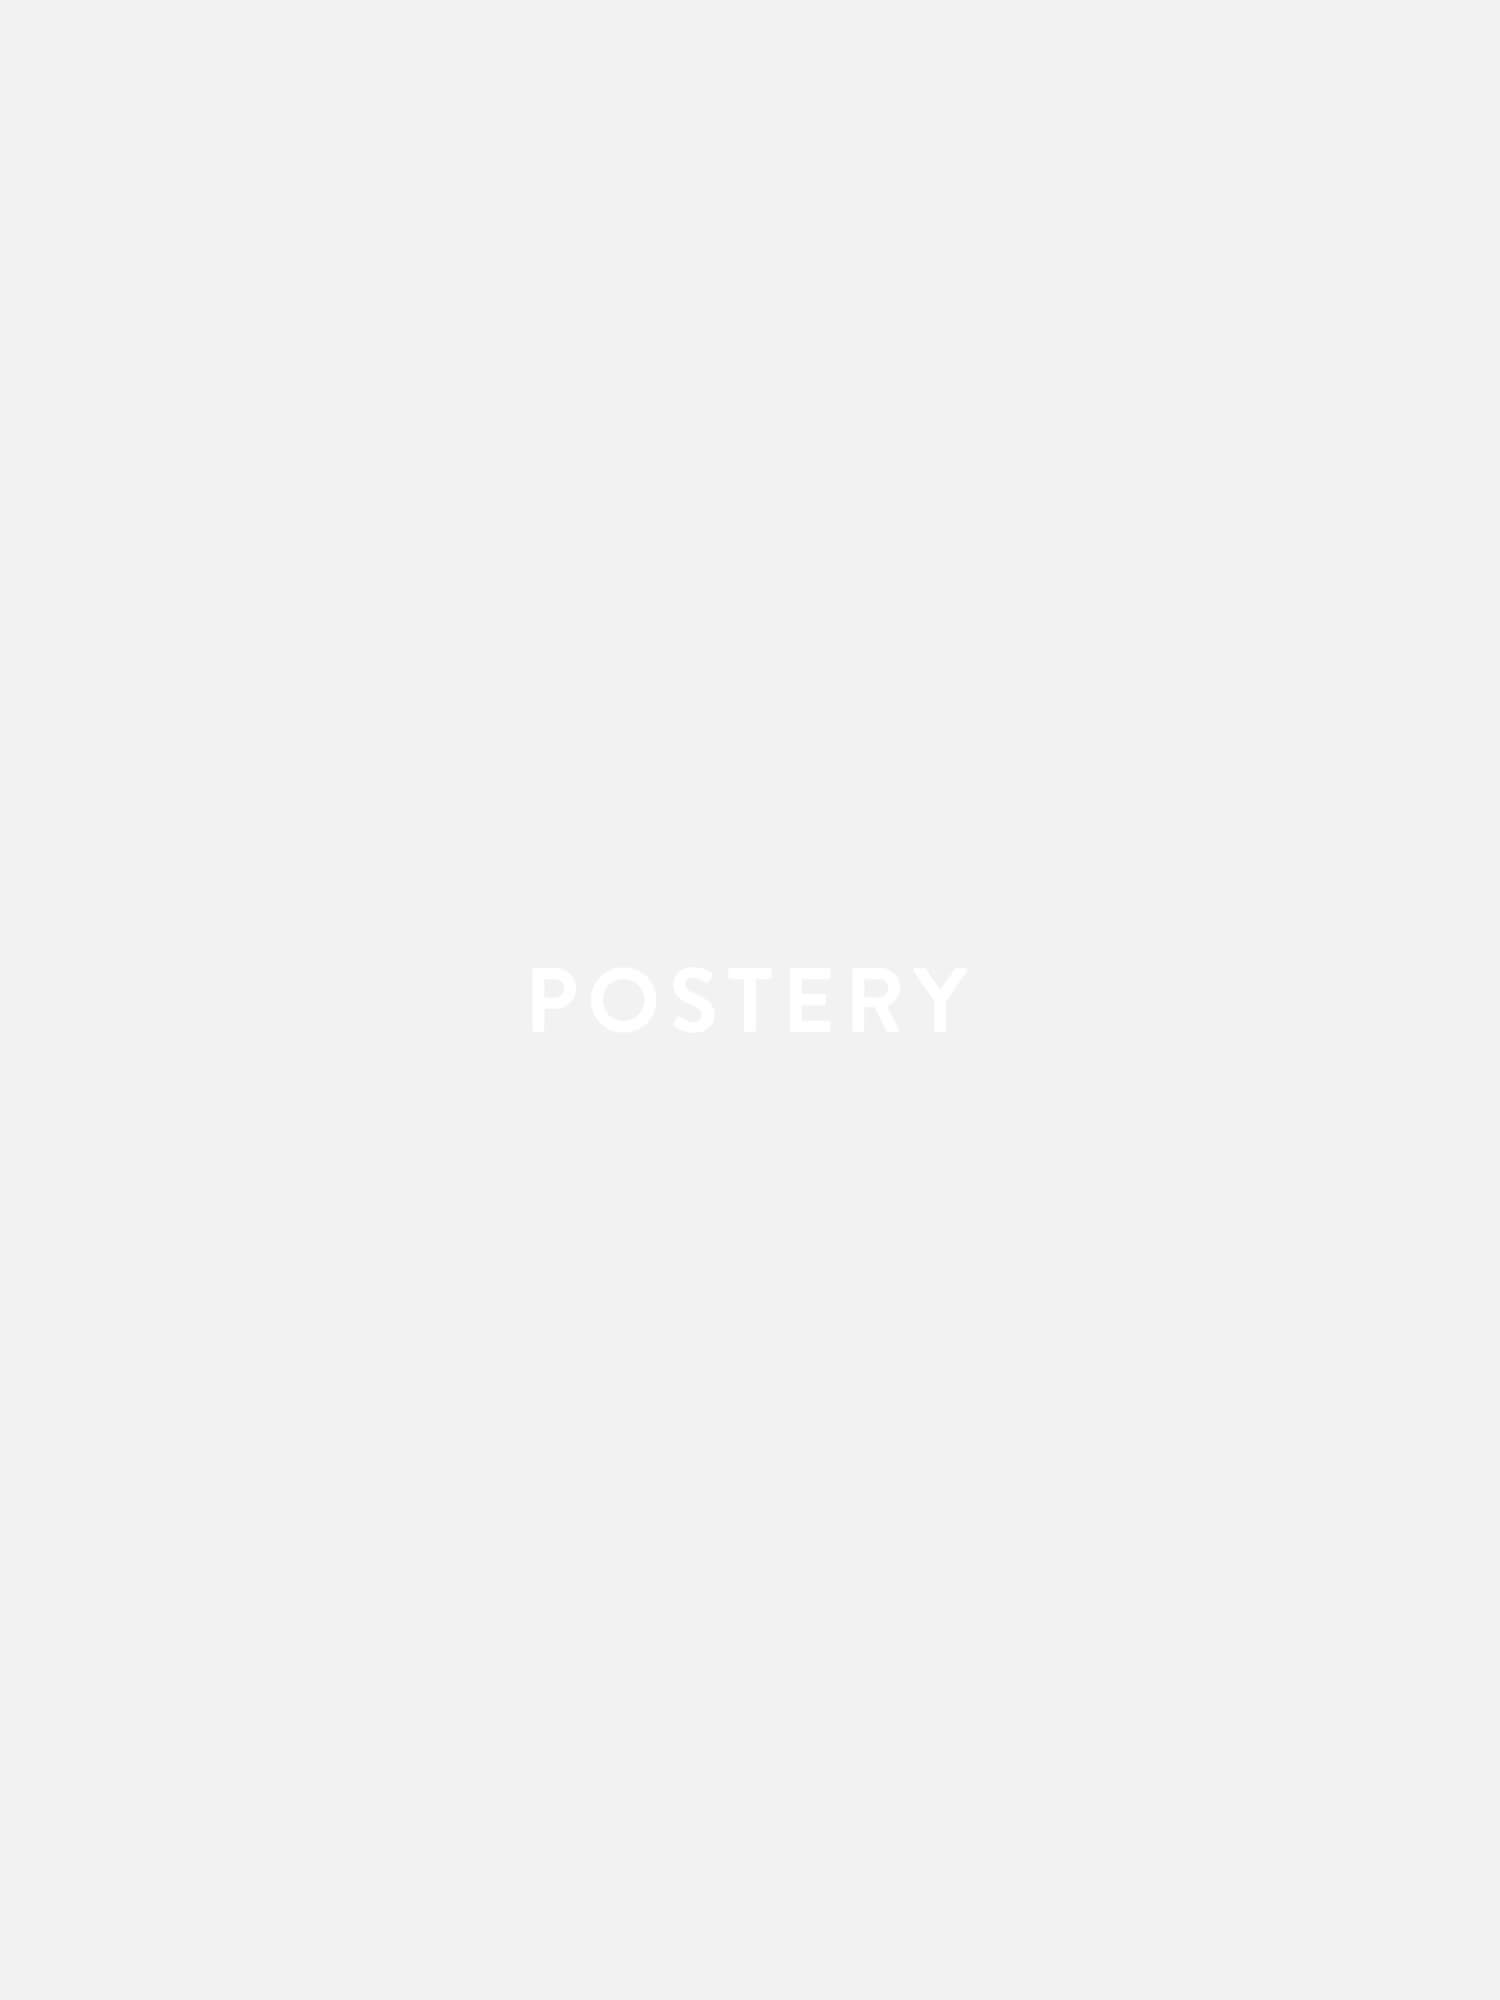 Chanel Paris Poster